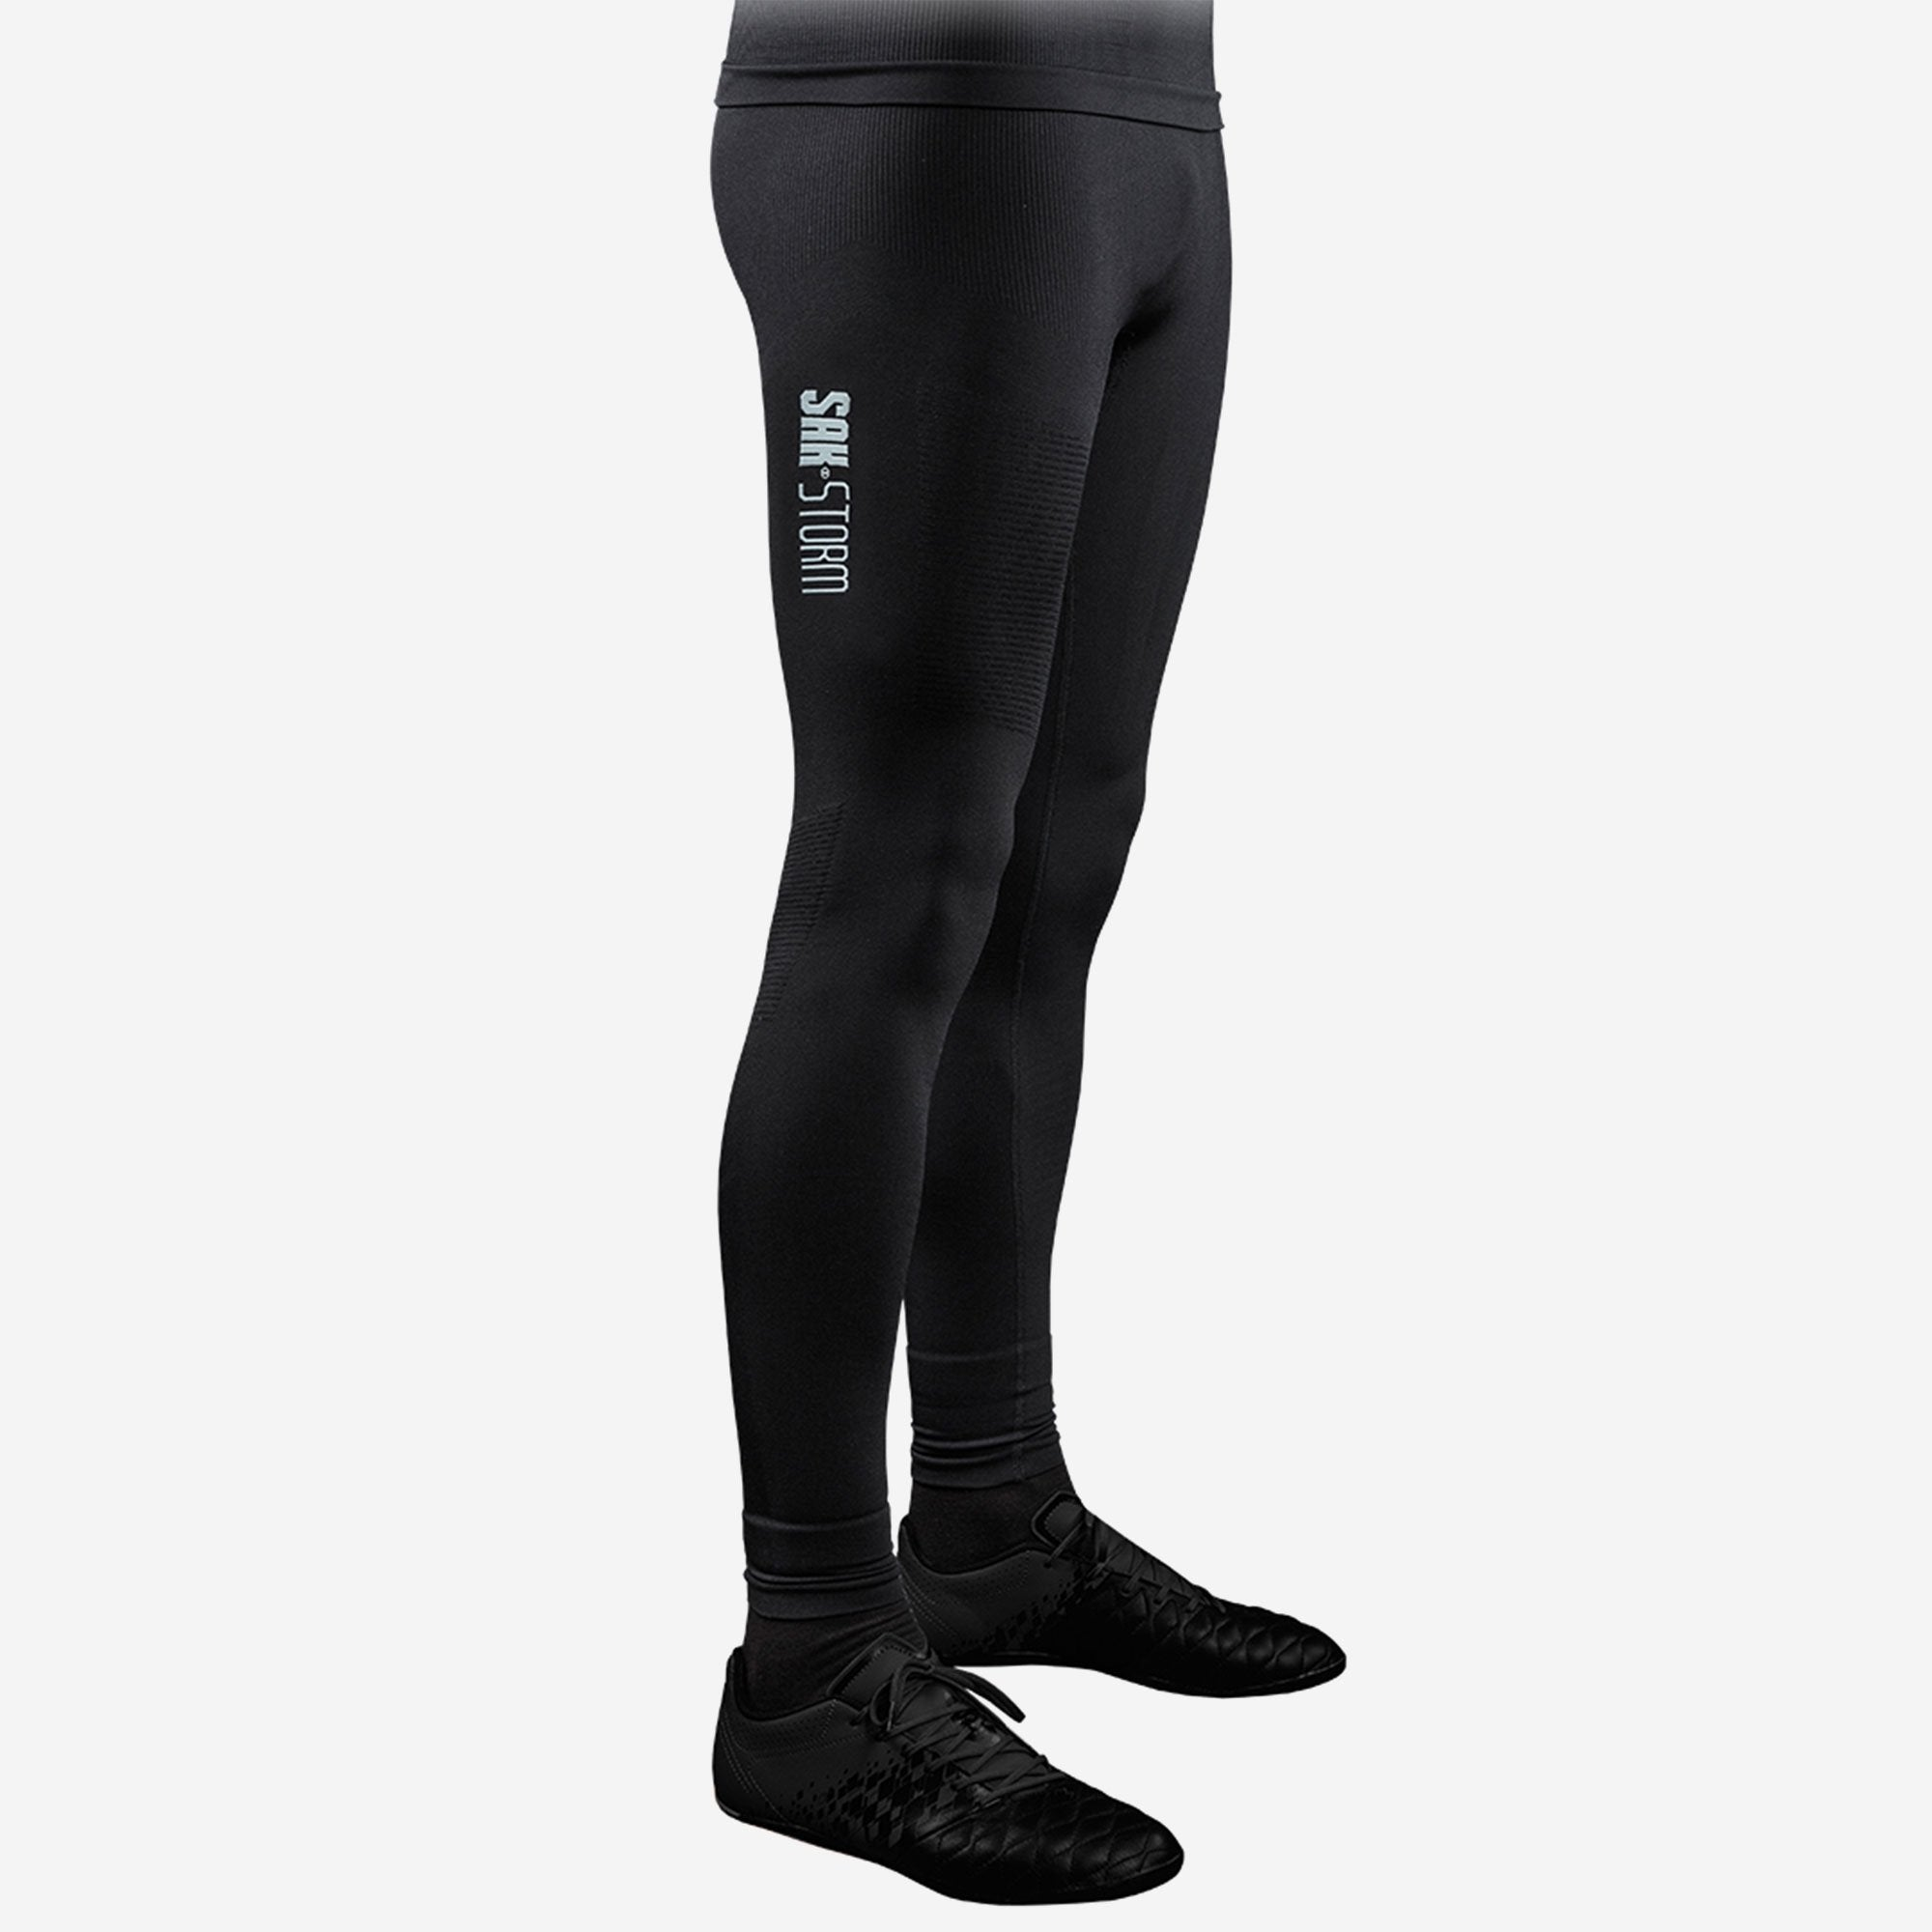 SAK STORM Compression Tights